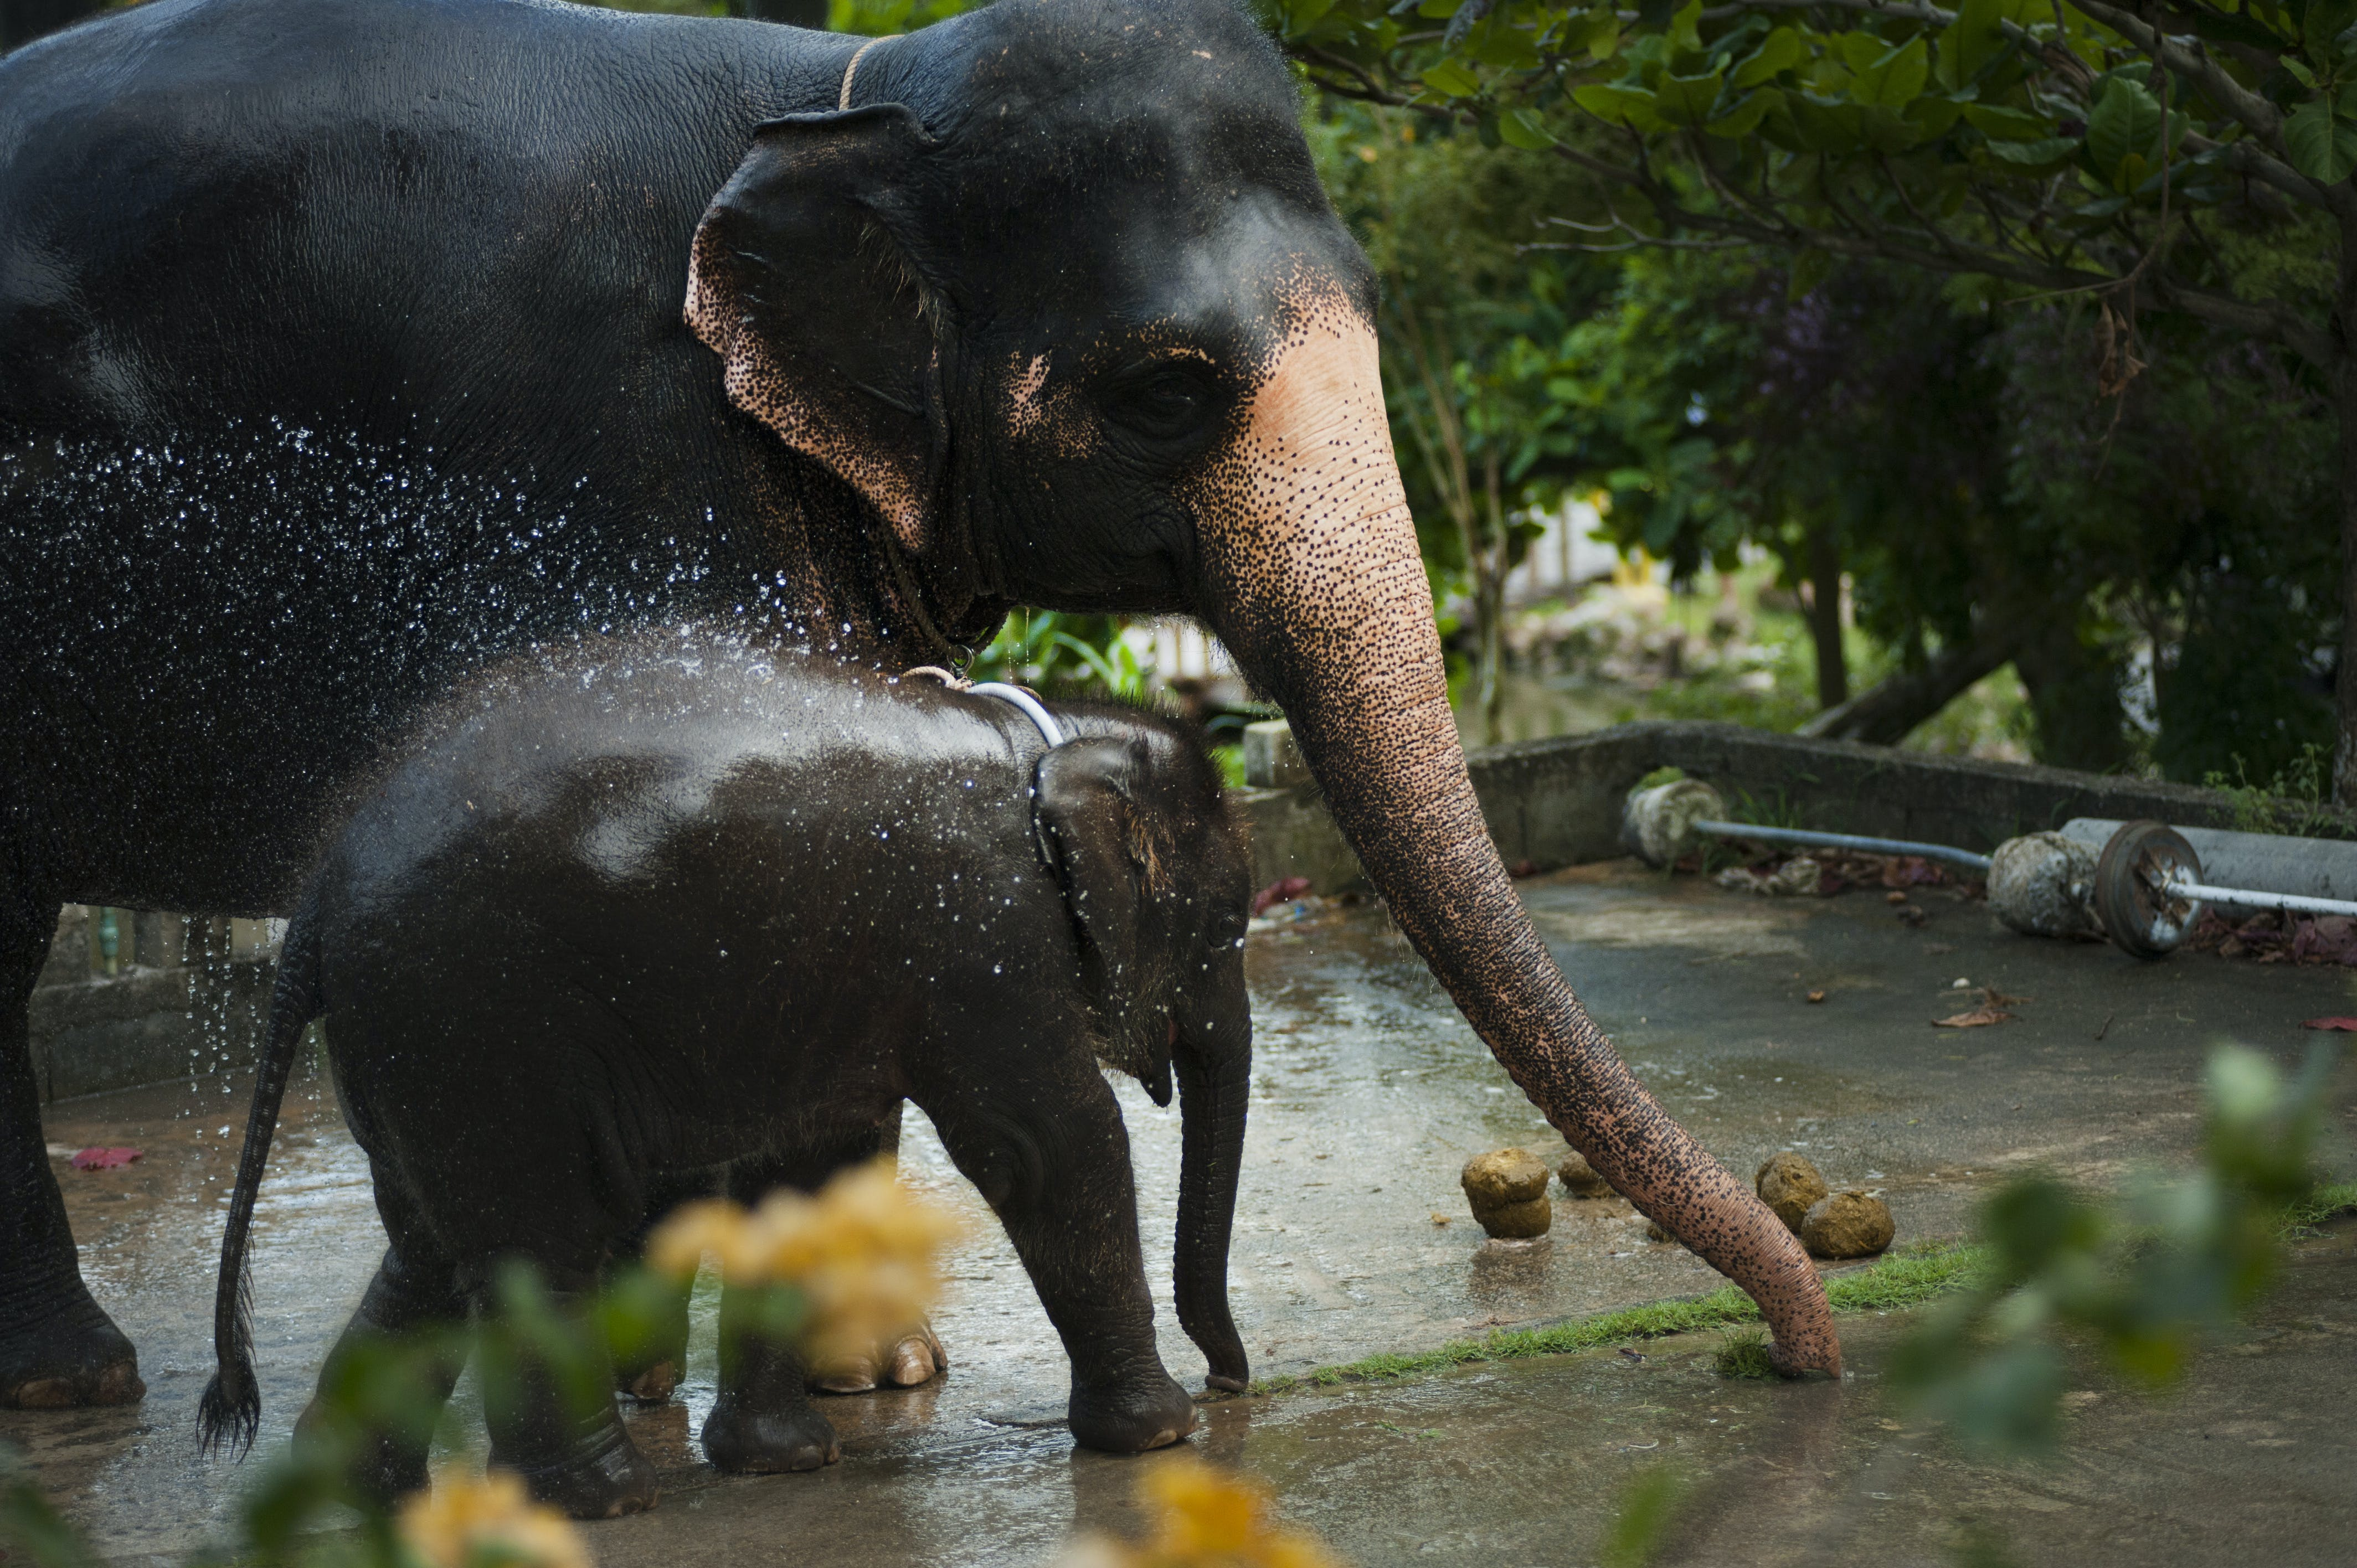 Photo of Black Elephant With Baby